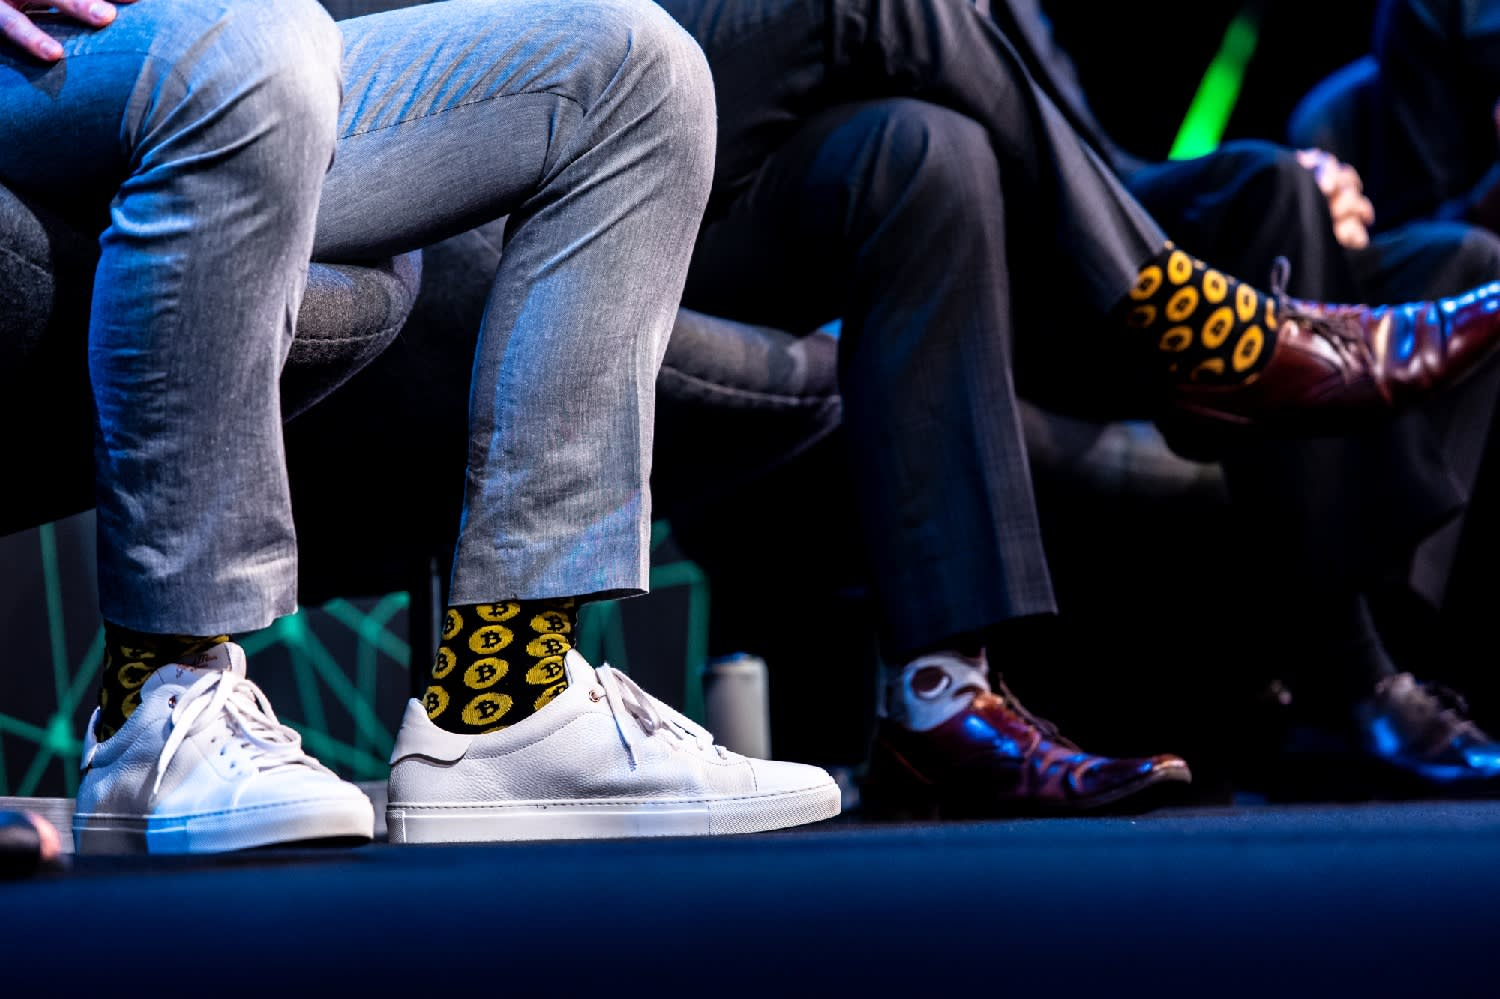 Bitcoin socks worn by panelists at the 2019 CryptoCompare conference